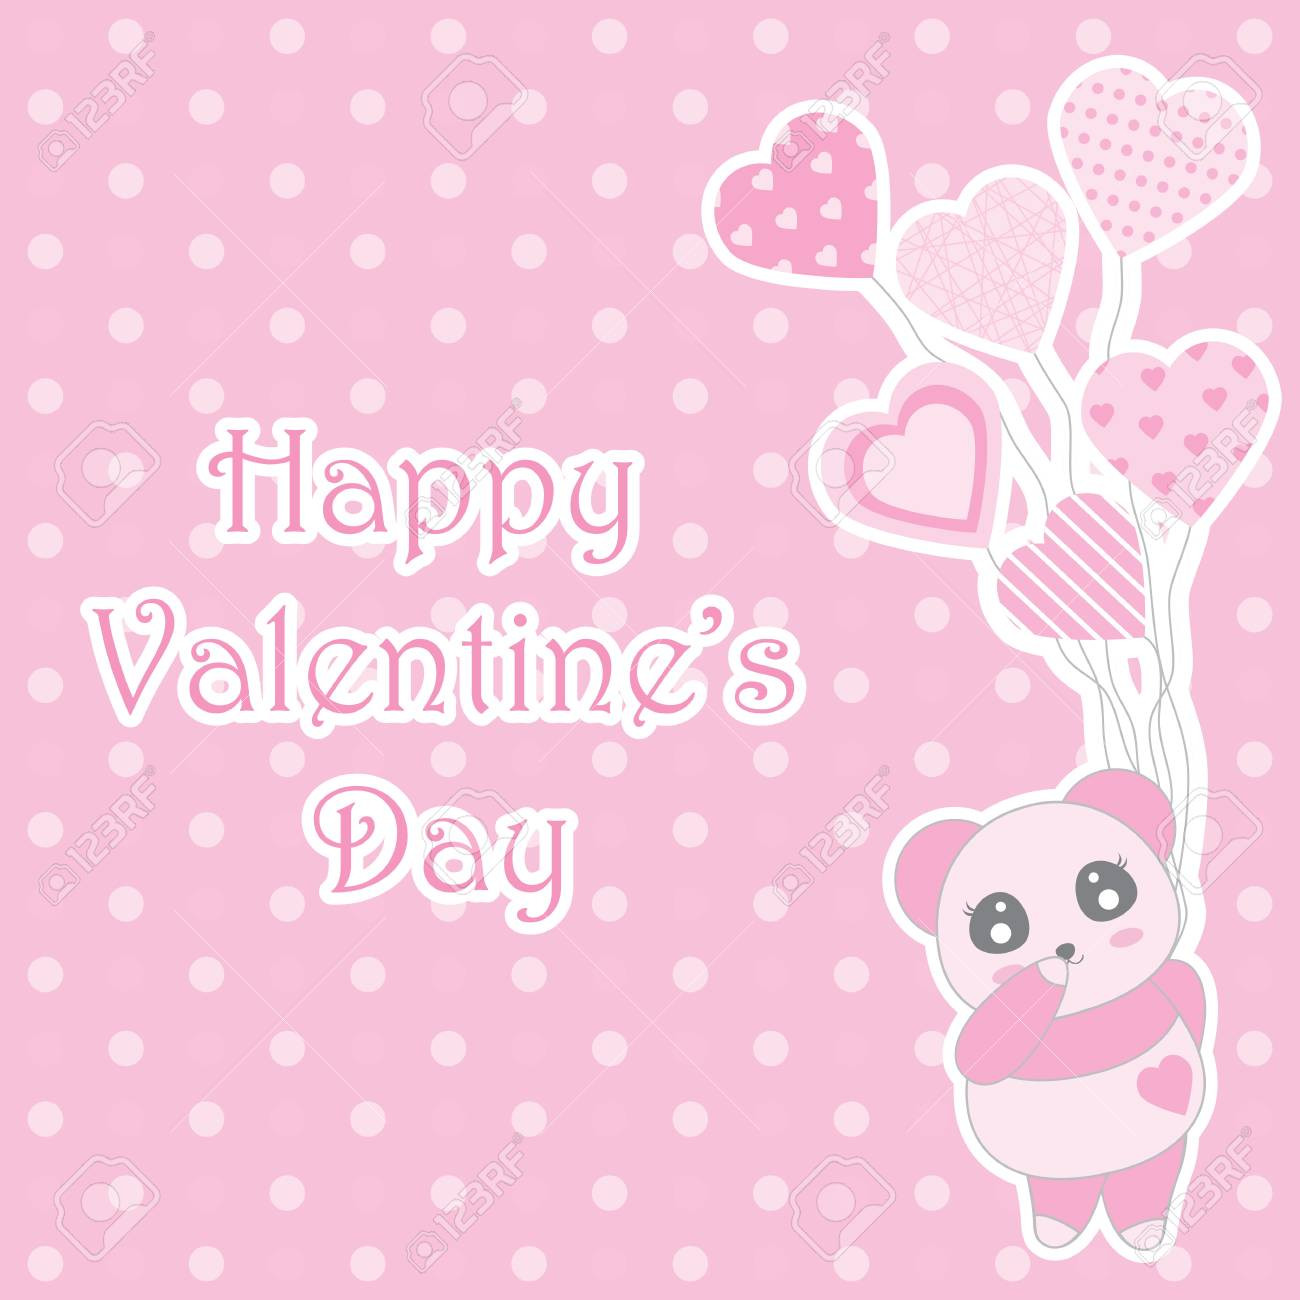 Valentines Day Illustration With Cute Baby Pink Panda Brings Balloons On Polka Dot Background Suitable For